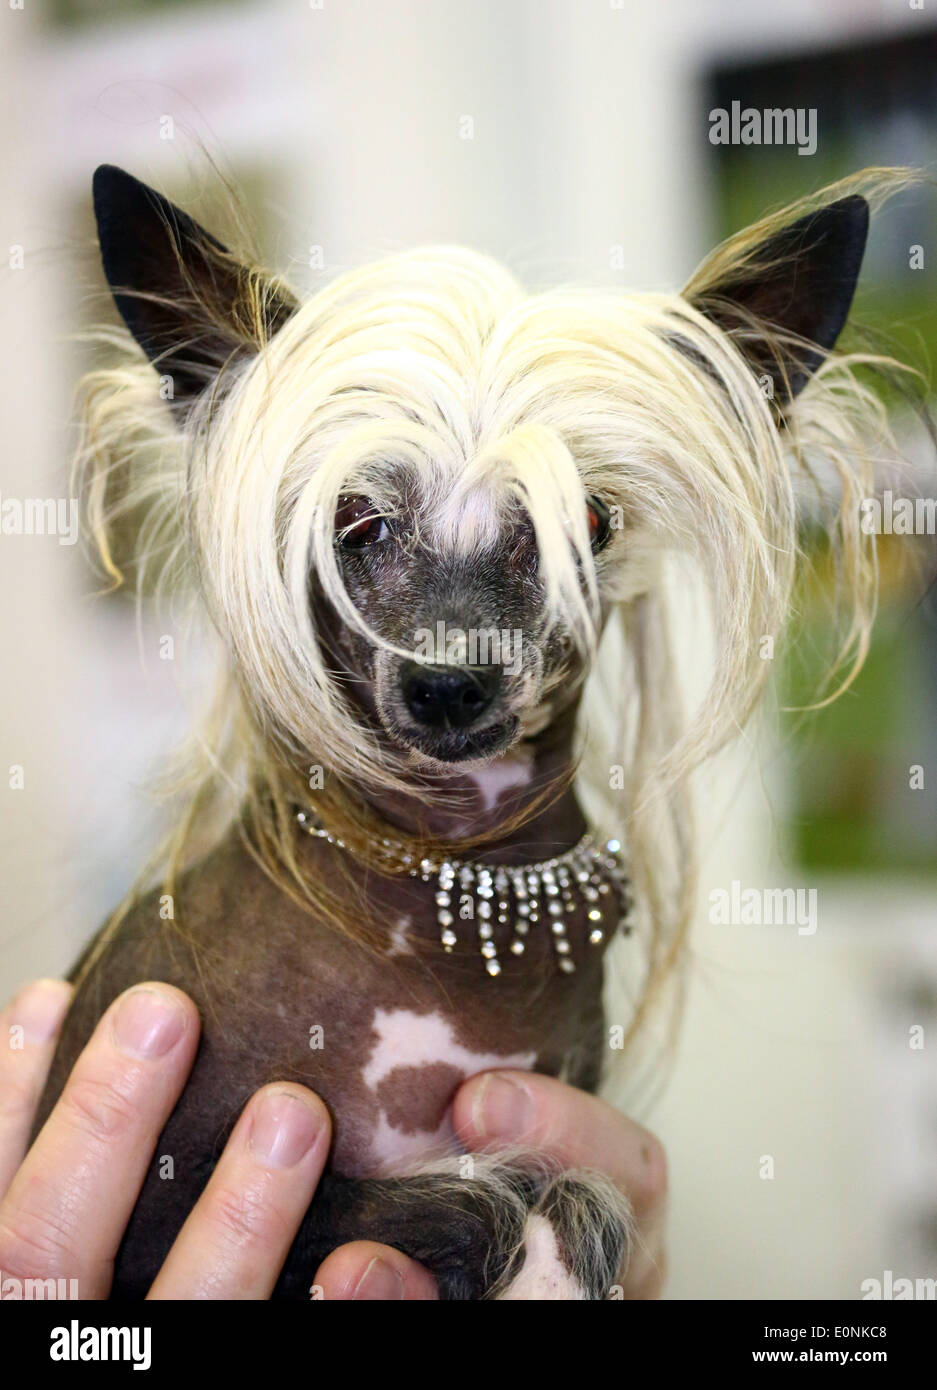 Chinese Crested Dog Show Stock Photos Chinese Crested Dog Show